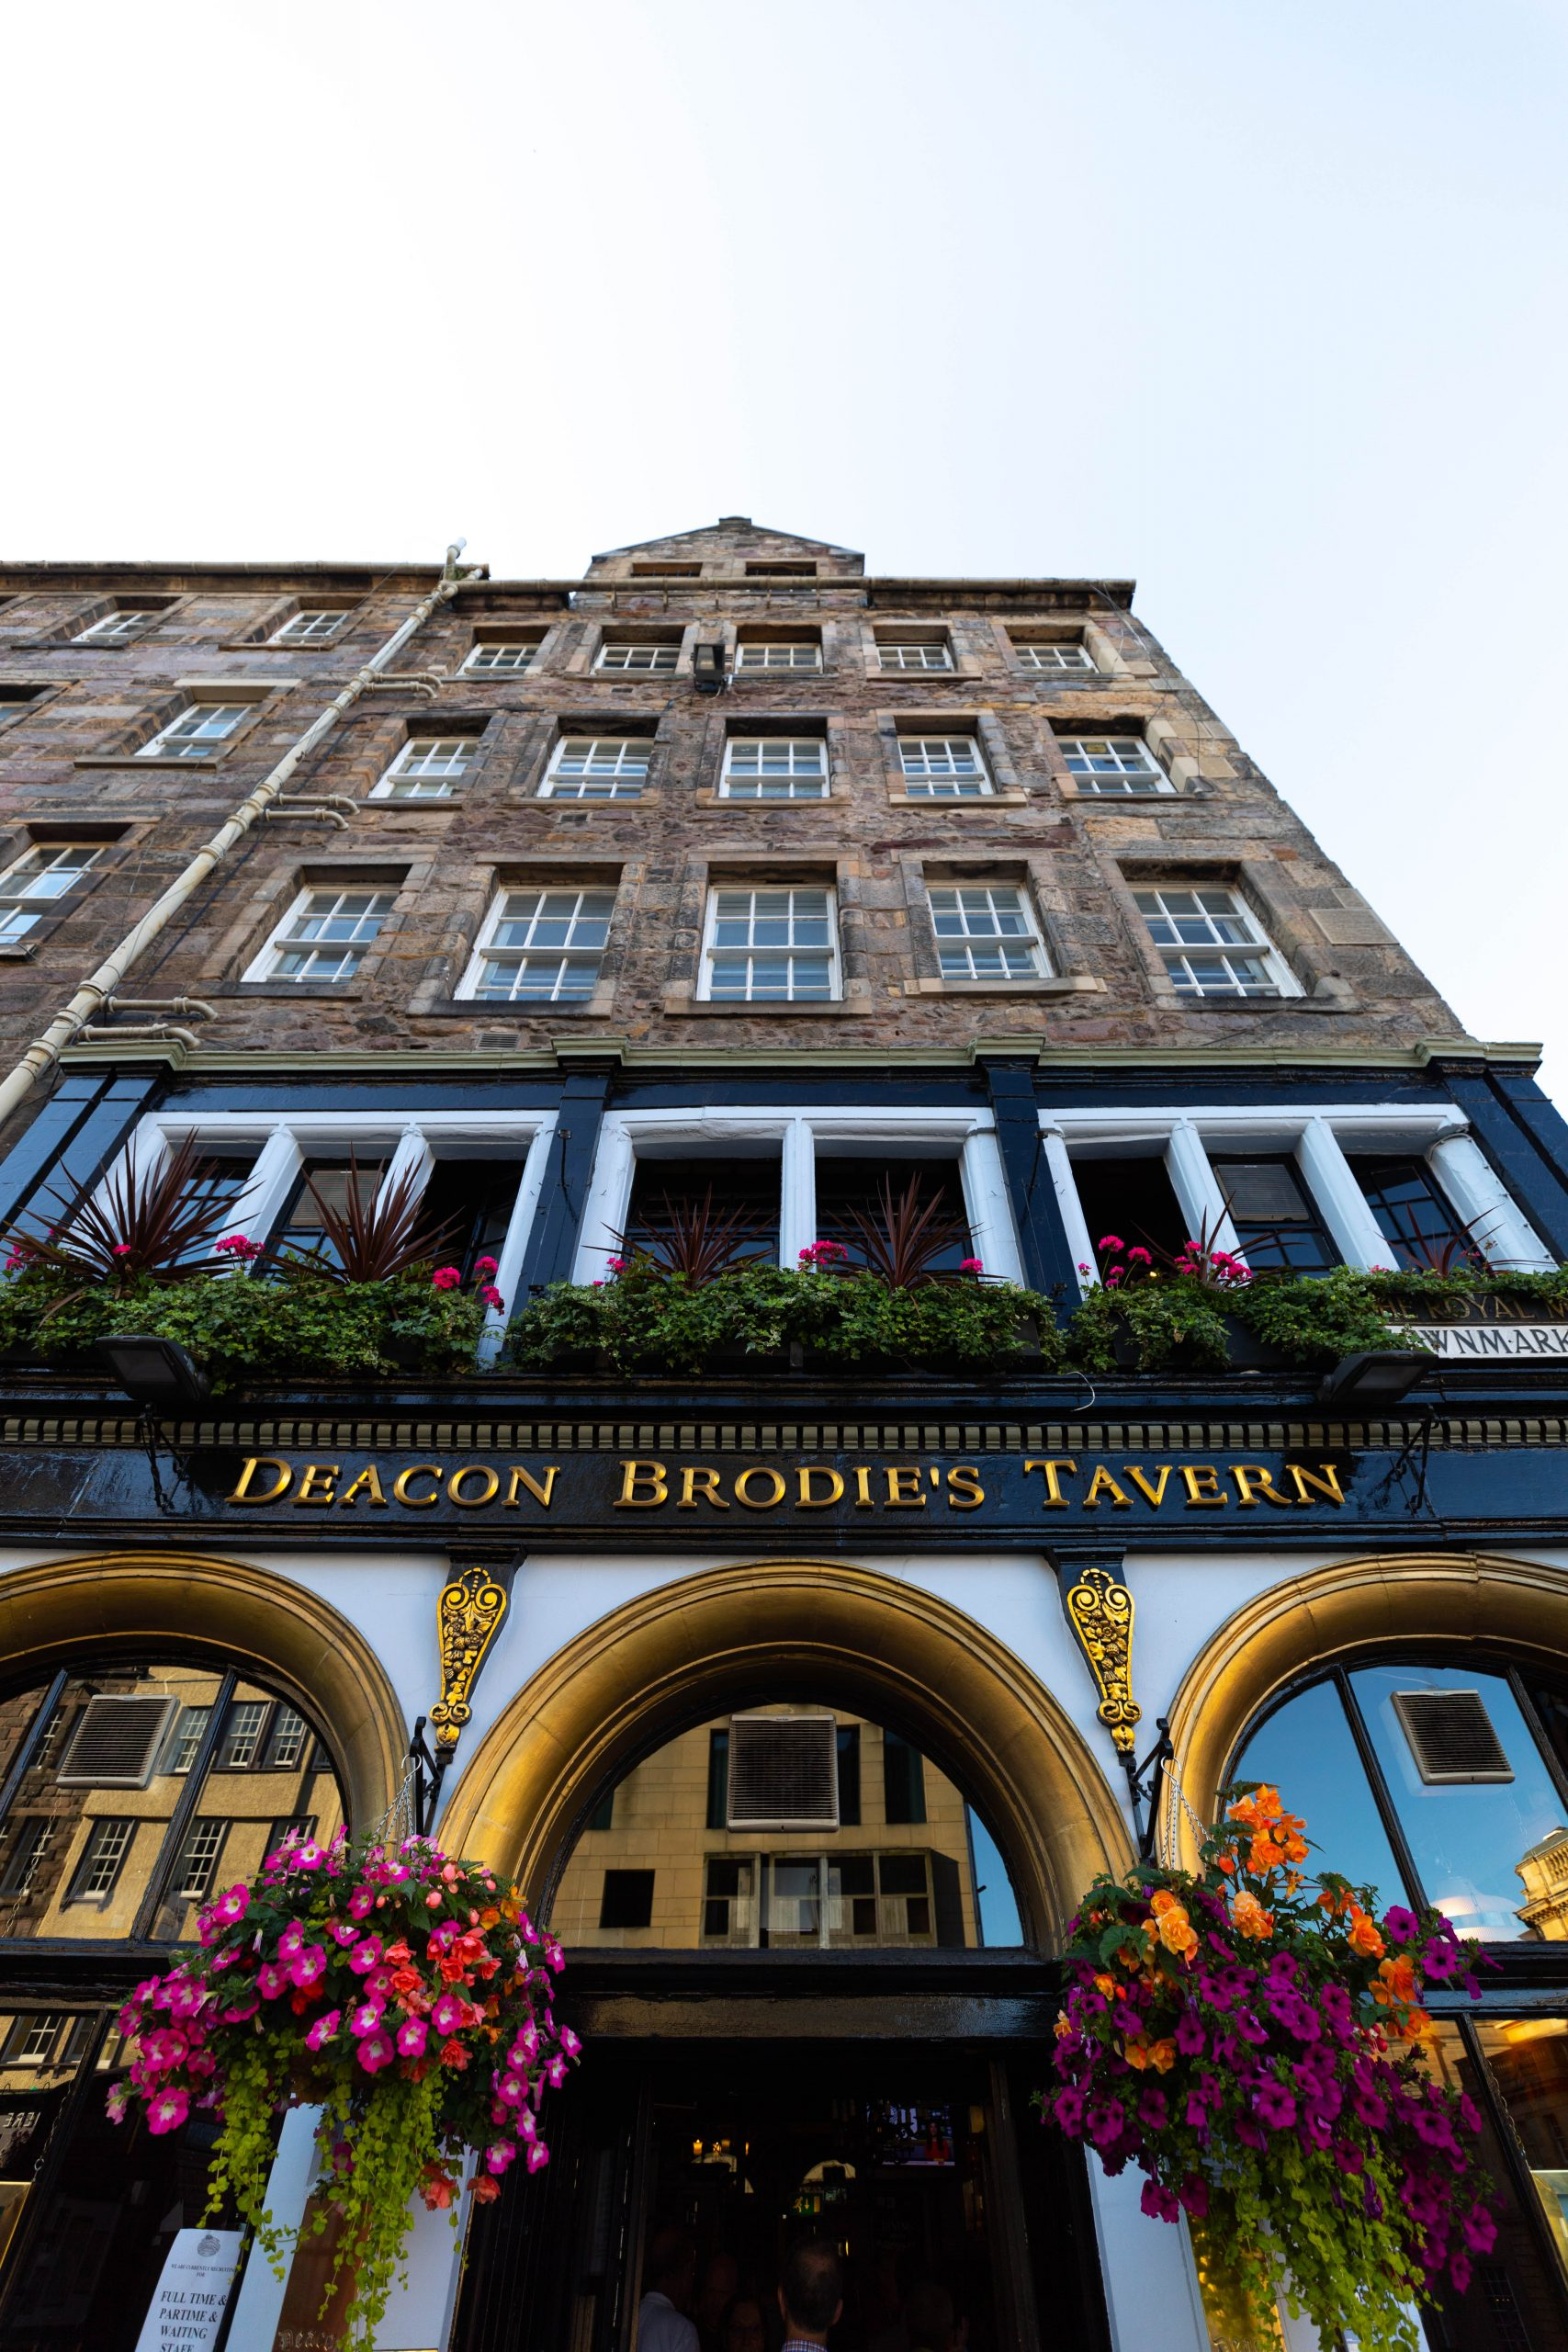 Deacon Brodie's Tavern Edinburgh Old Town Royal Mile Edinburgh the Luxury Travel Guide by Annie Fairfax Where to Eat What to Do Where to Stay Site Seeing in Edinburgh Honeymoon Vacation Ideas